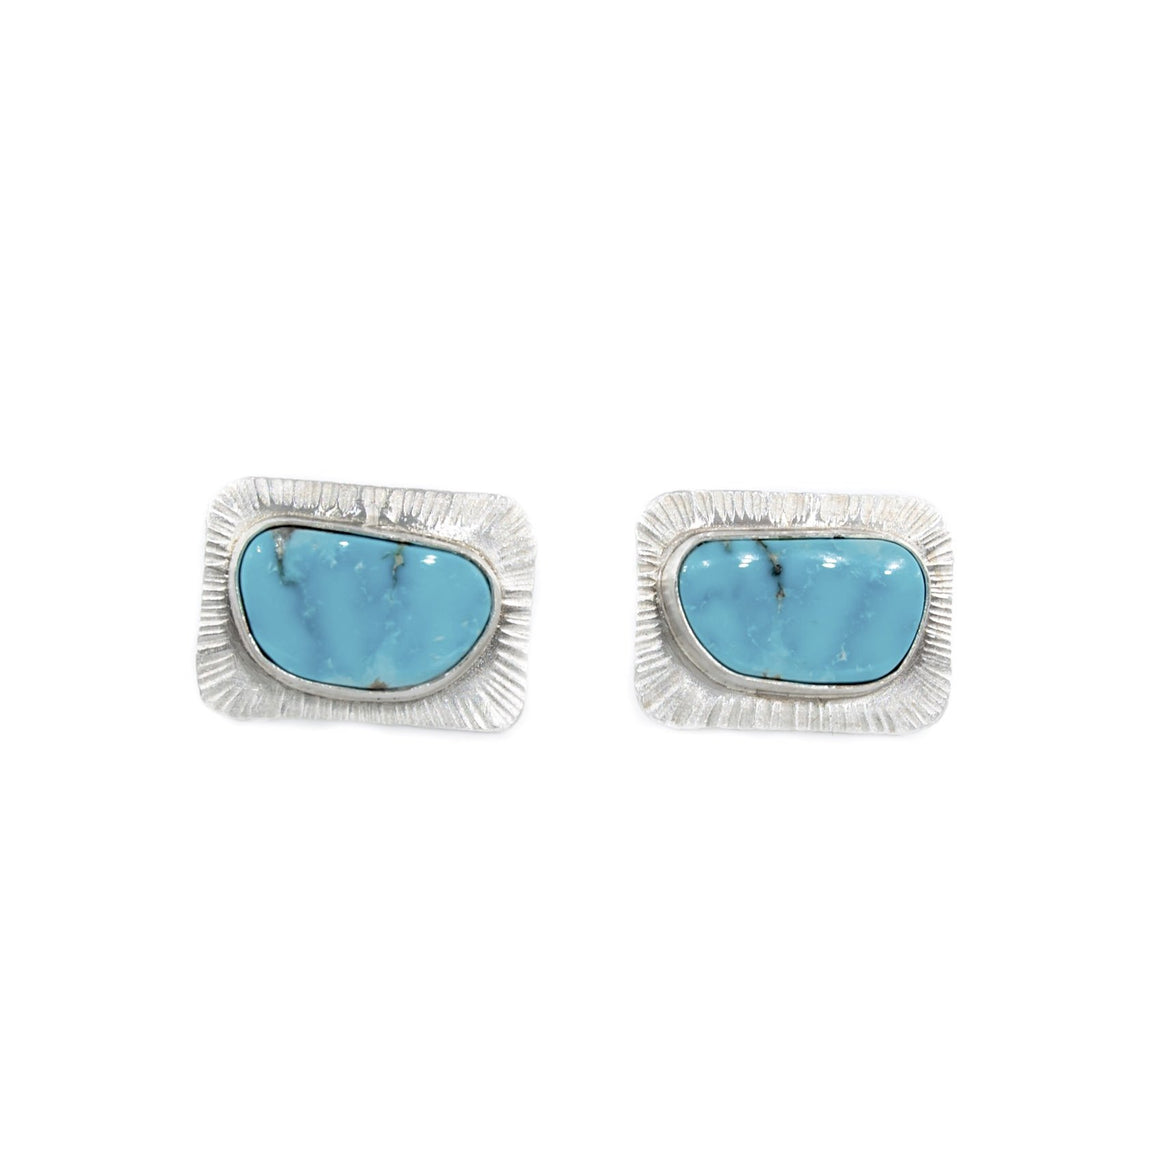 Turquoise and Silver Cuff Links by Original Sin Jewelry